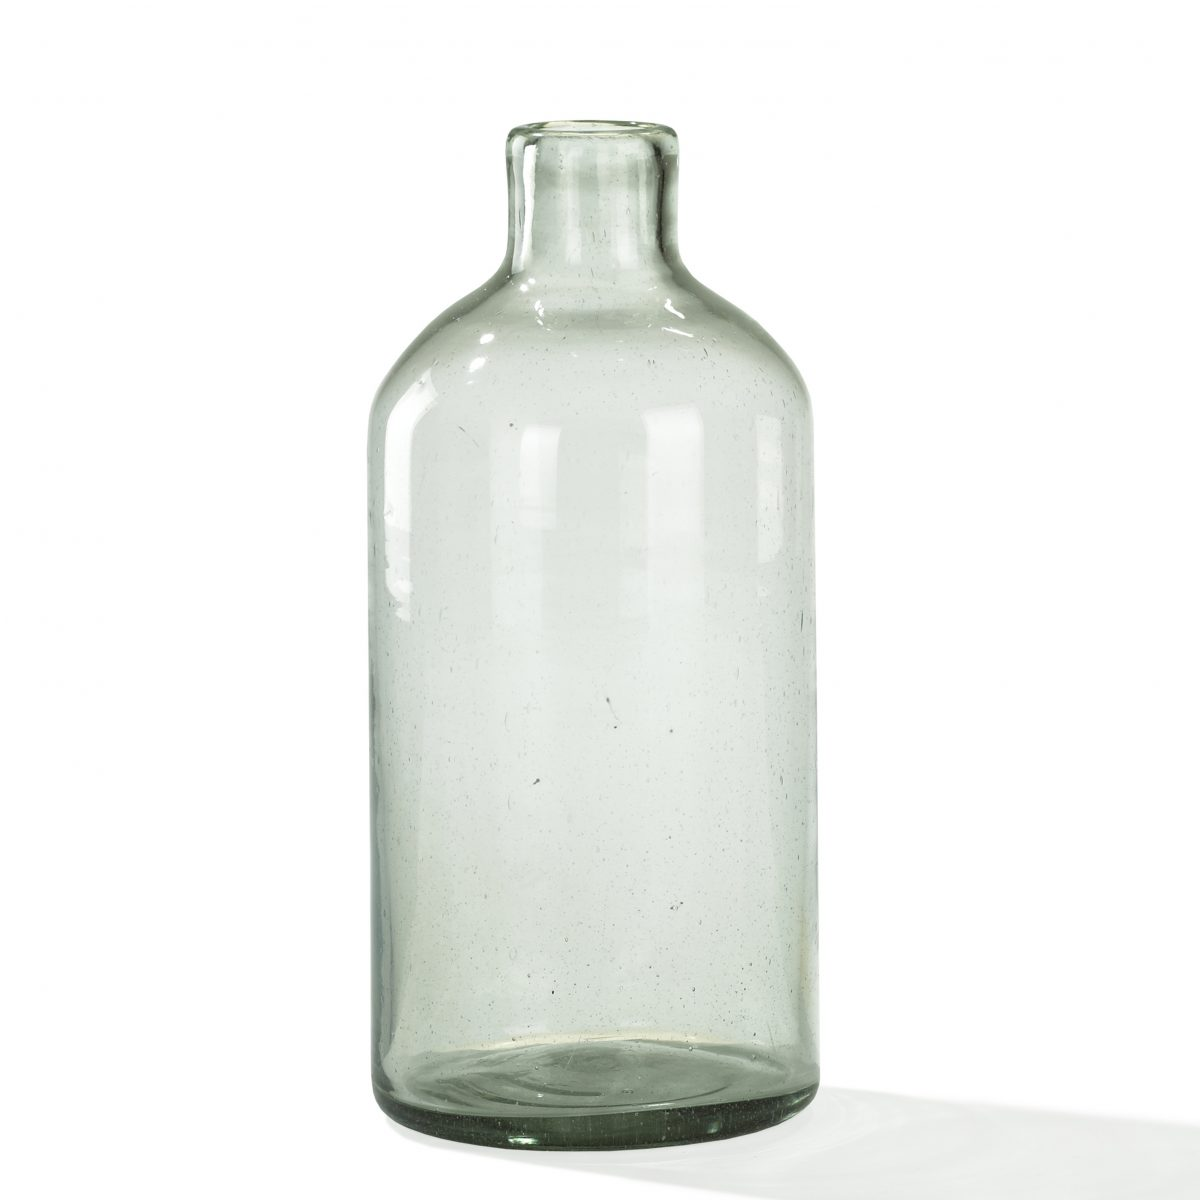 Vase 35 transparent Van Eijk Vander Lubbe Imperfect Design